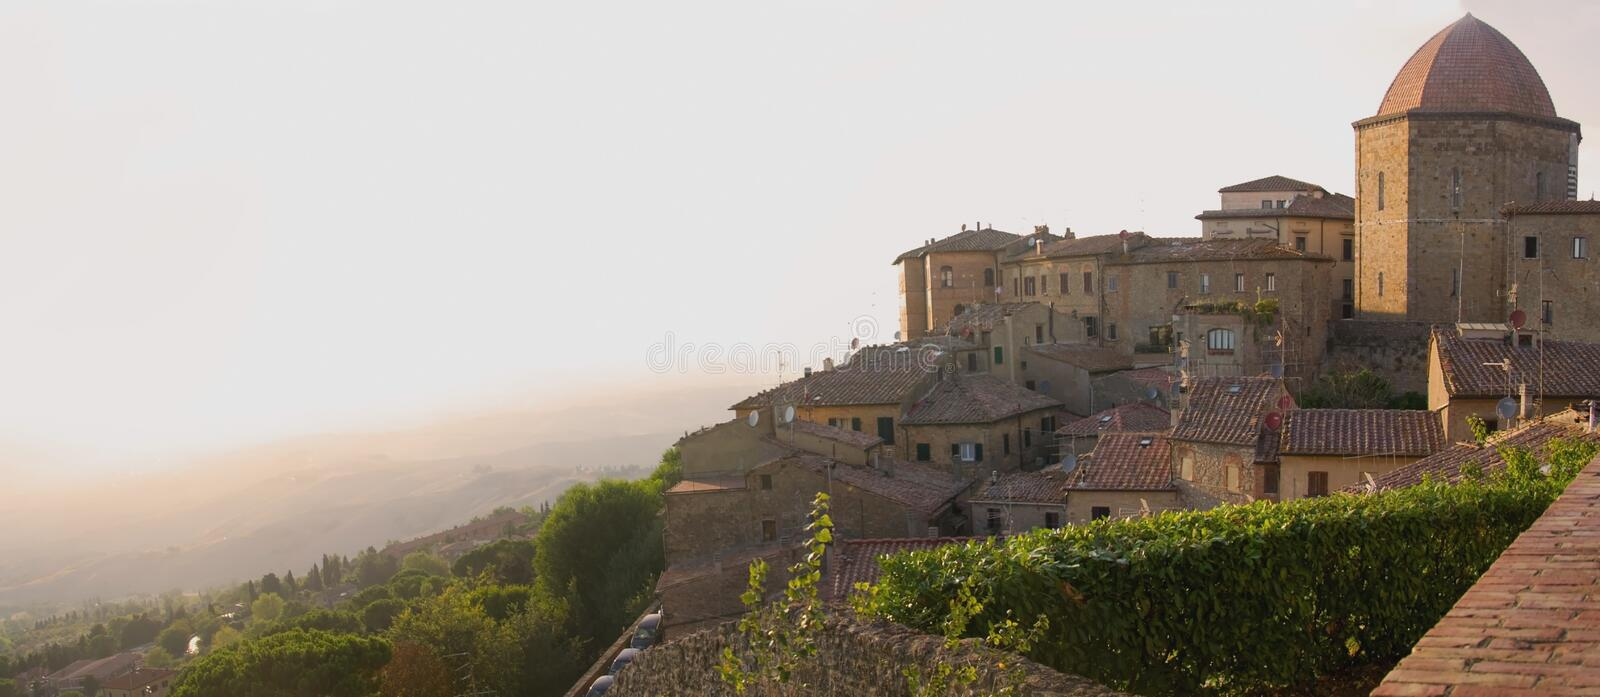 Volterra, Tuscany panorama royalty free stock images